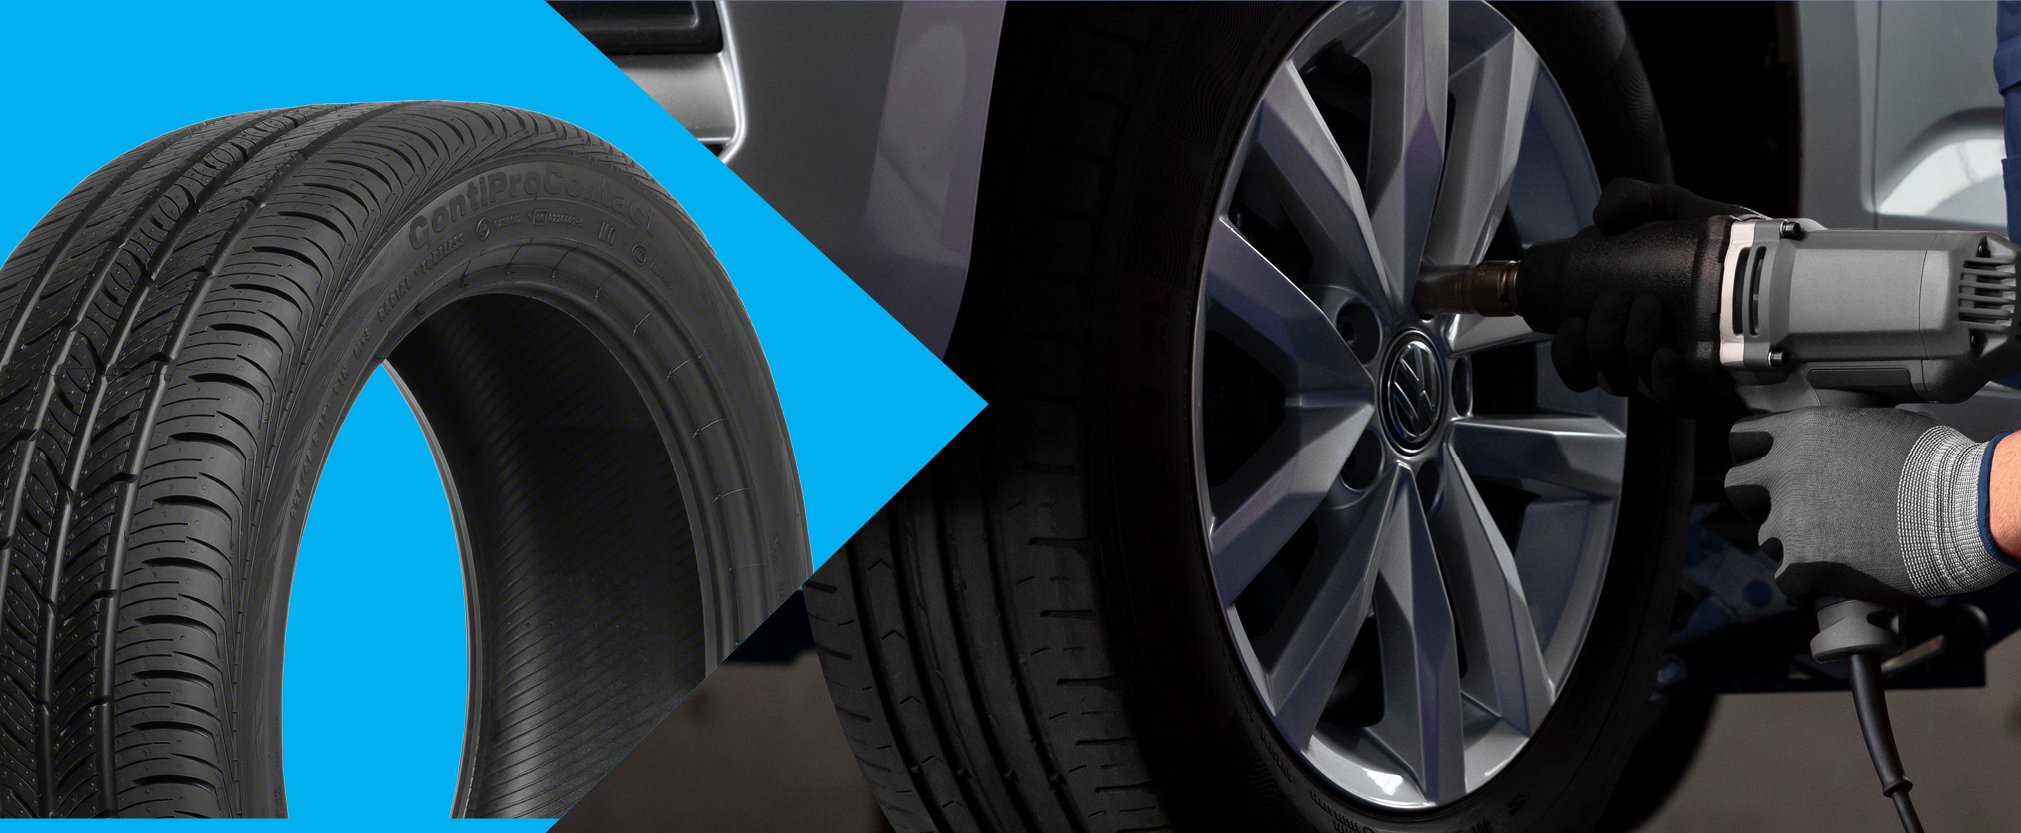 Buy 3 Eligible Tires, Get the 4th for $110